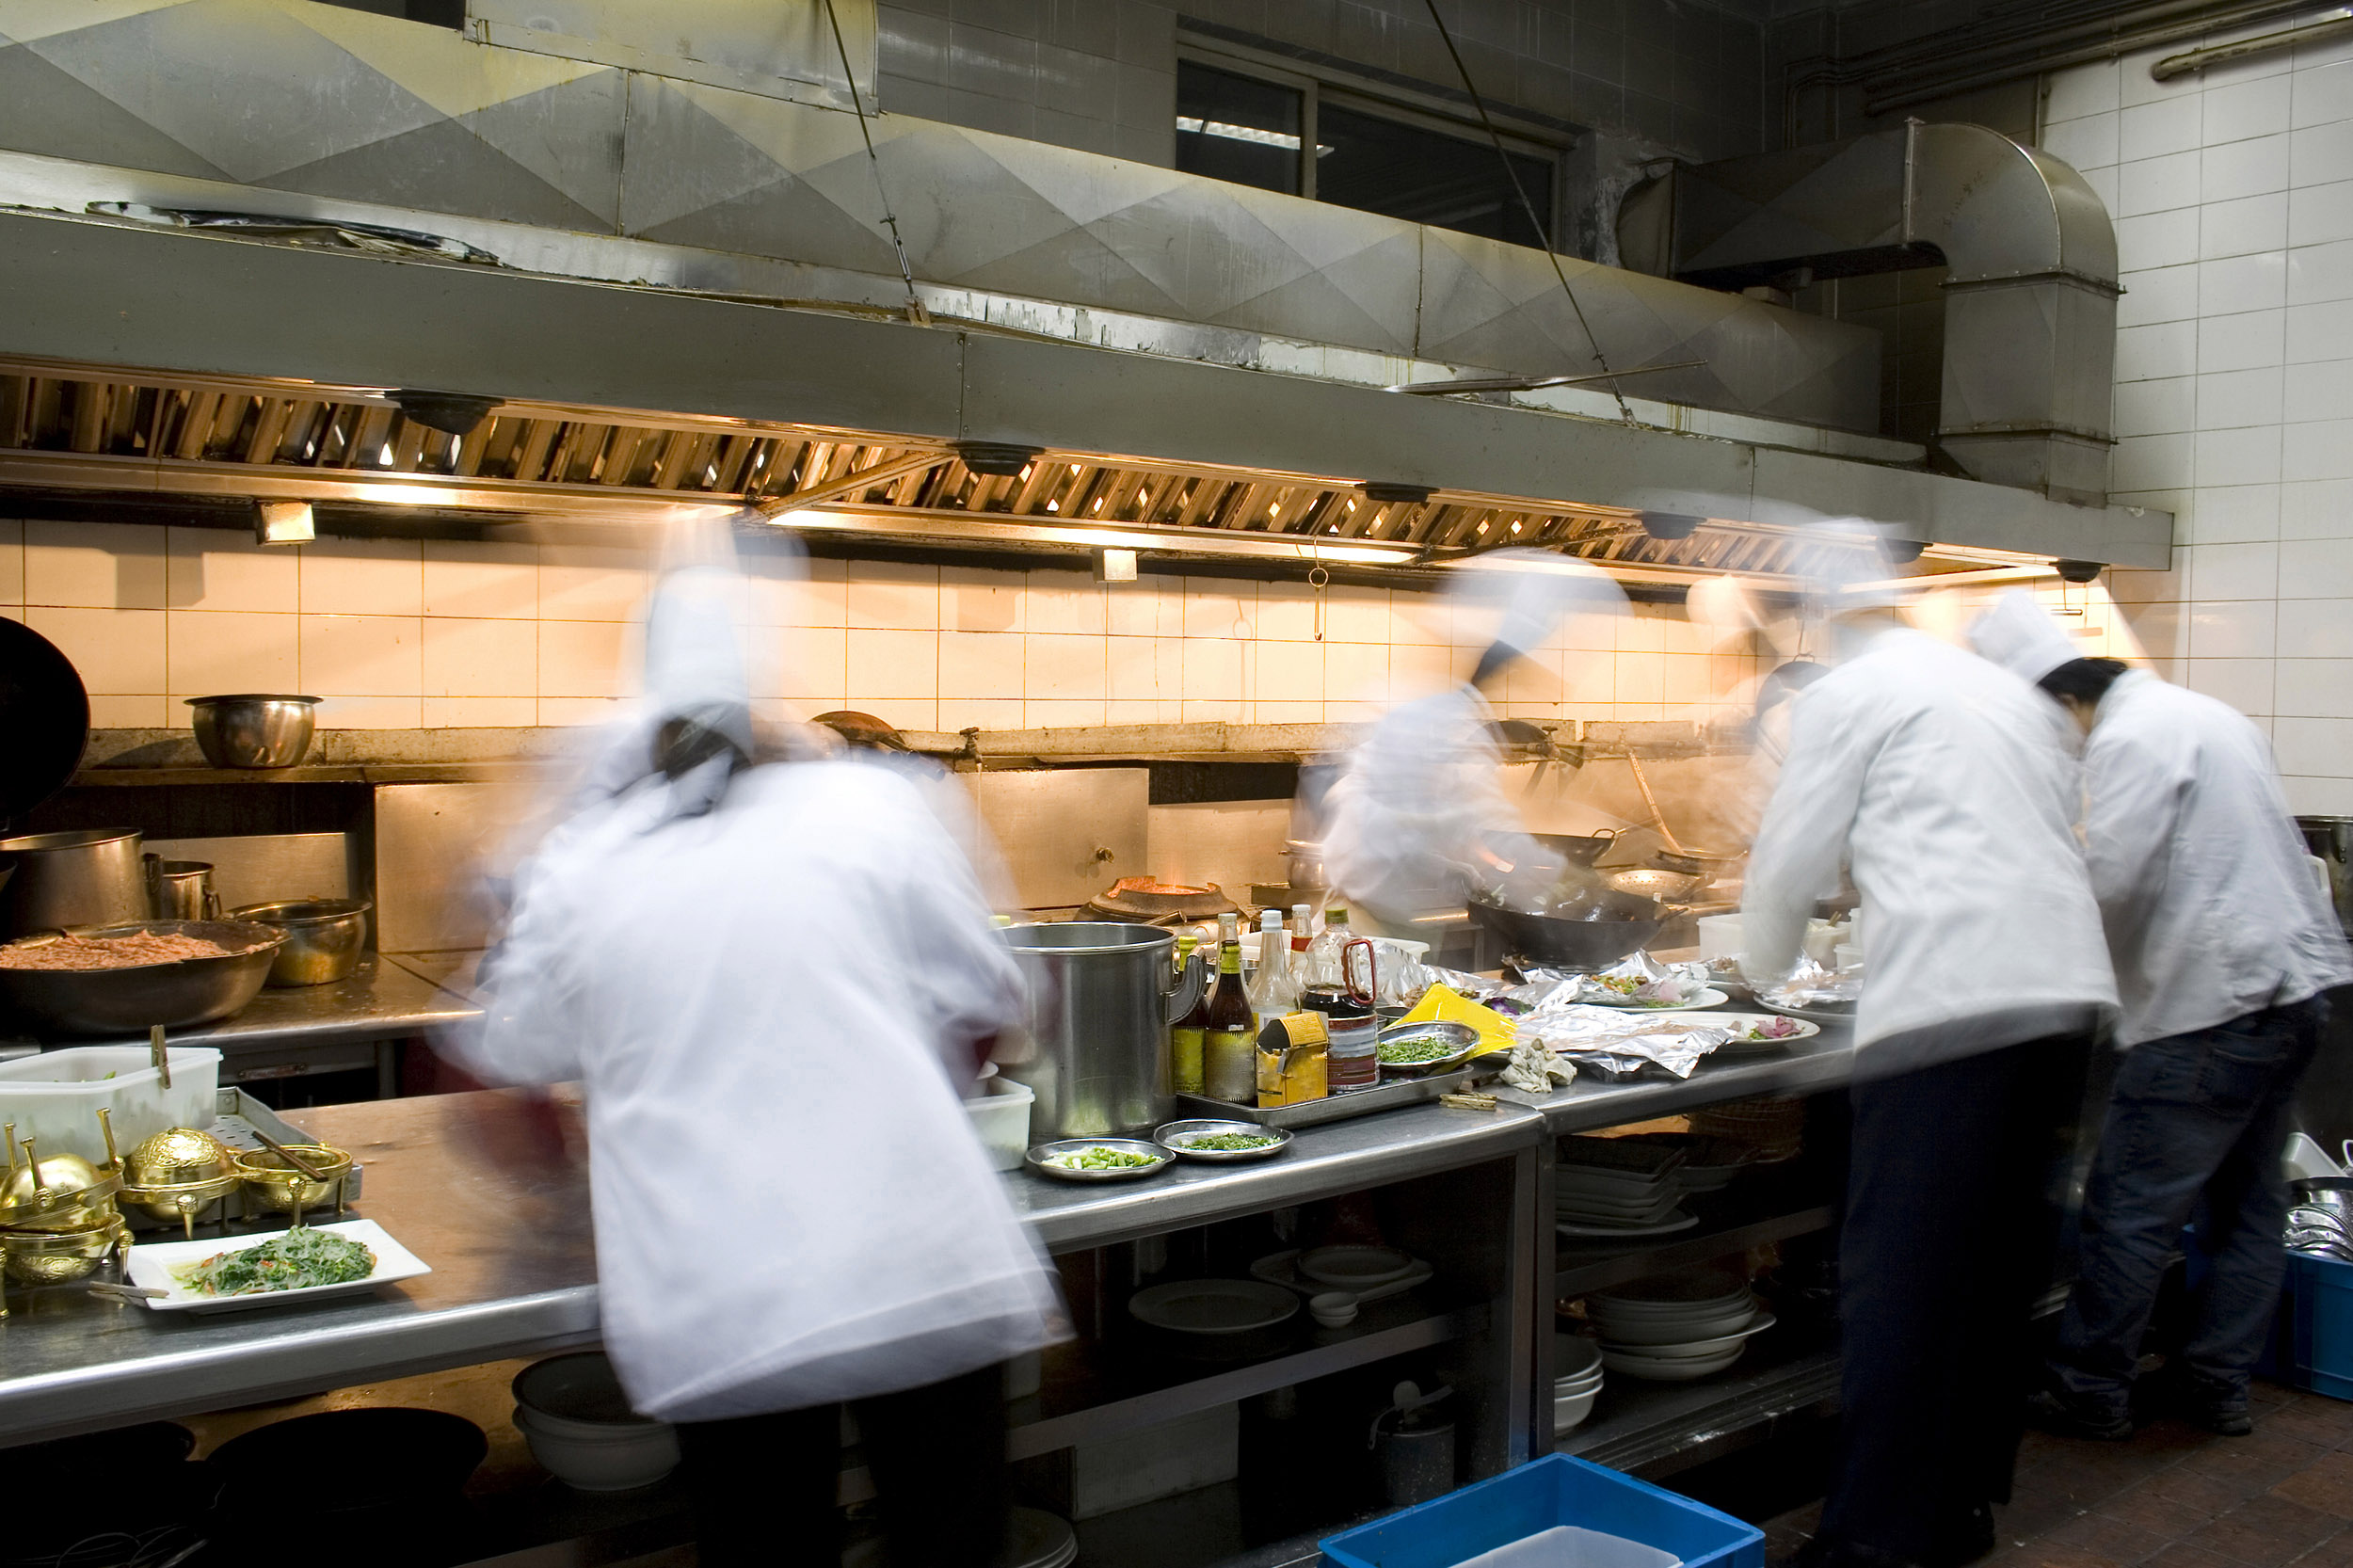 Kitchen Restaurant  Hospitality Training Vault Resources For The Hospitality Lesjpilh